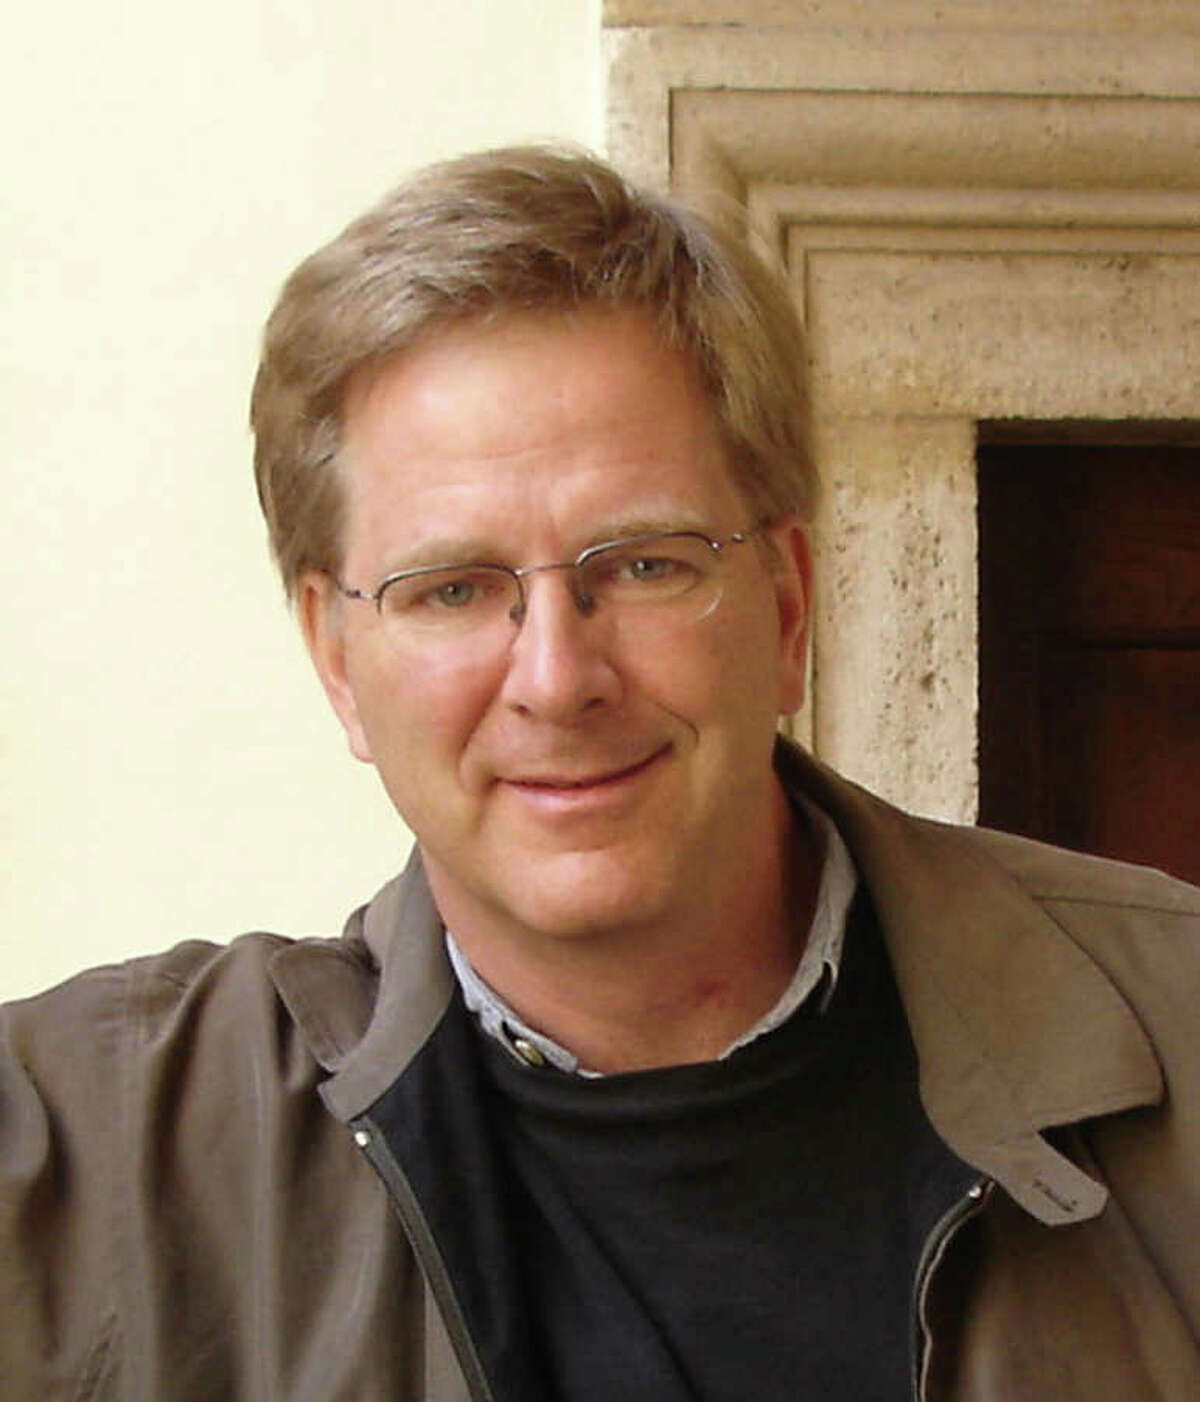 Rick Steves writes European travel guidebooks and hosts travel shows on public television and public radio.